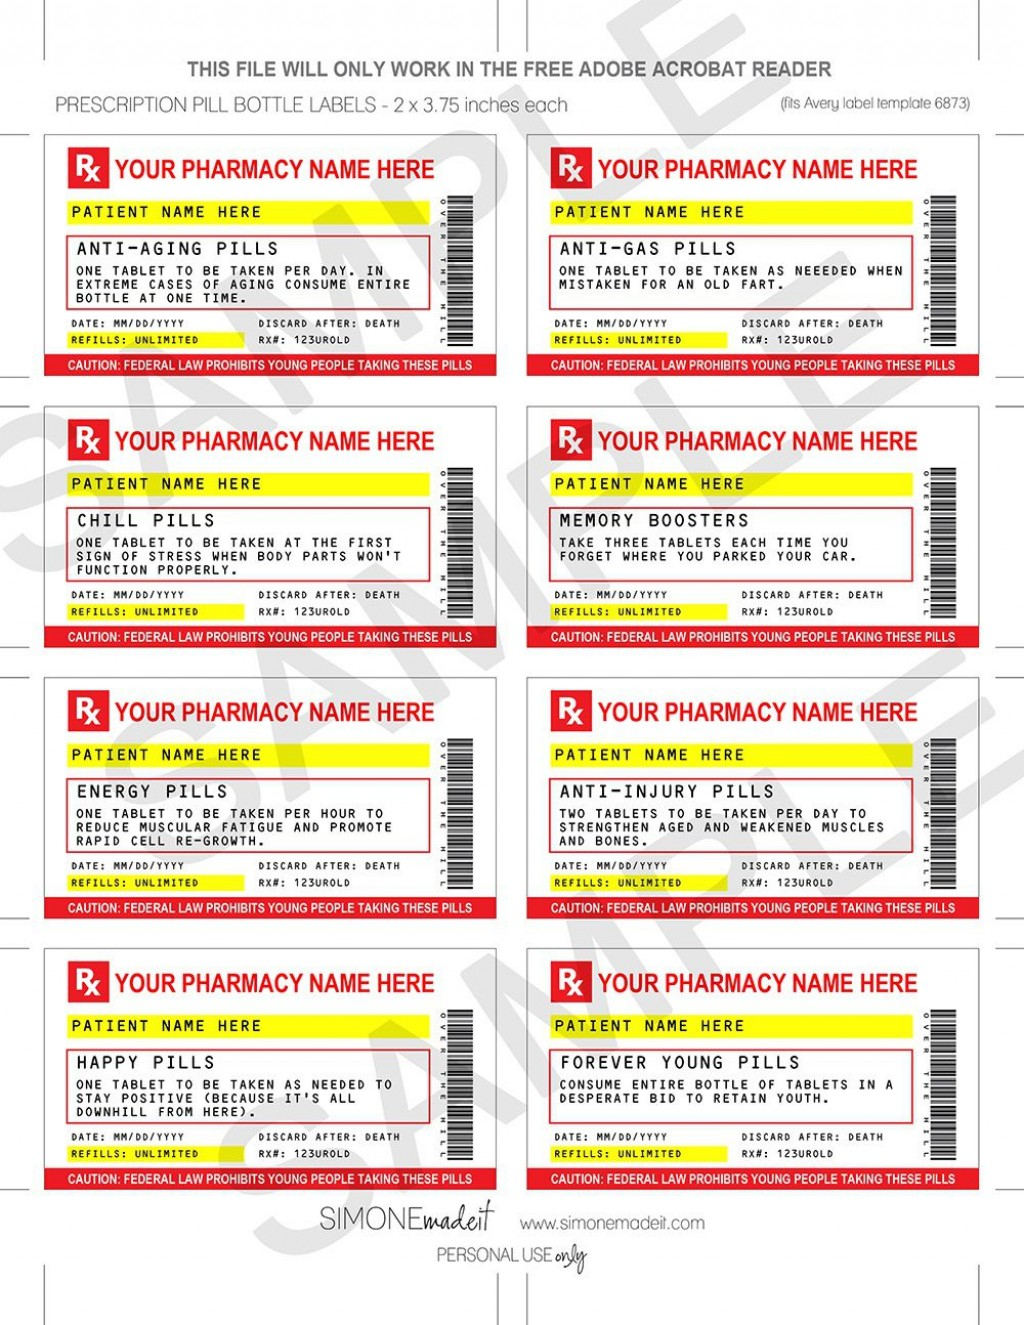 007 Frightening Fake Prescription Label Template Example  Free BottleLarge